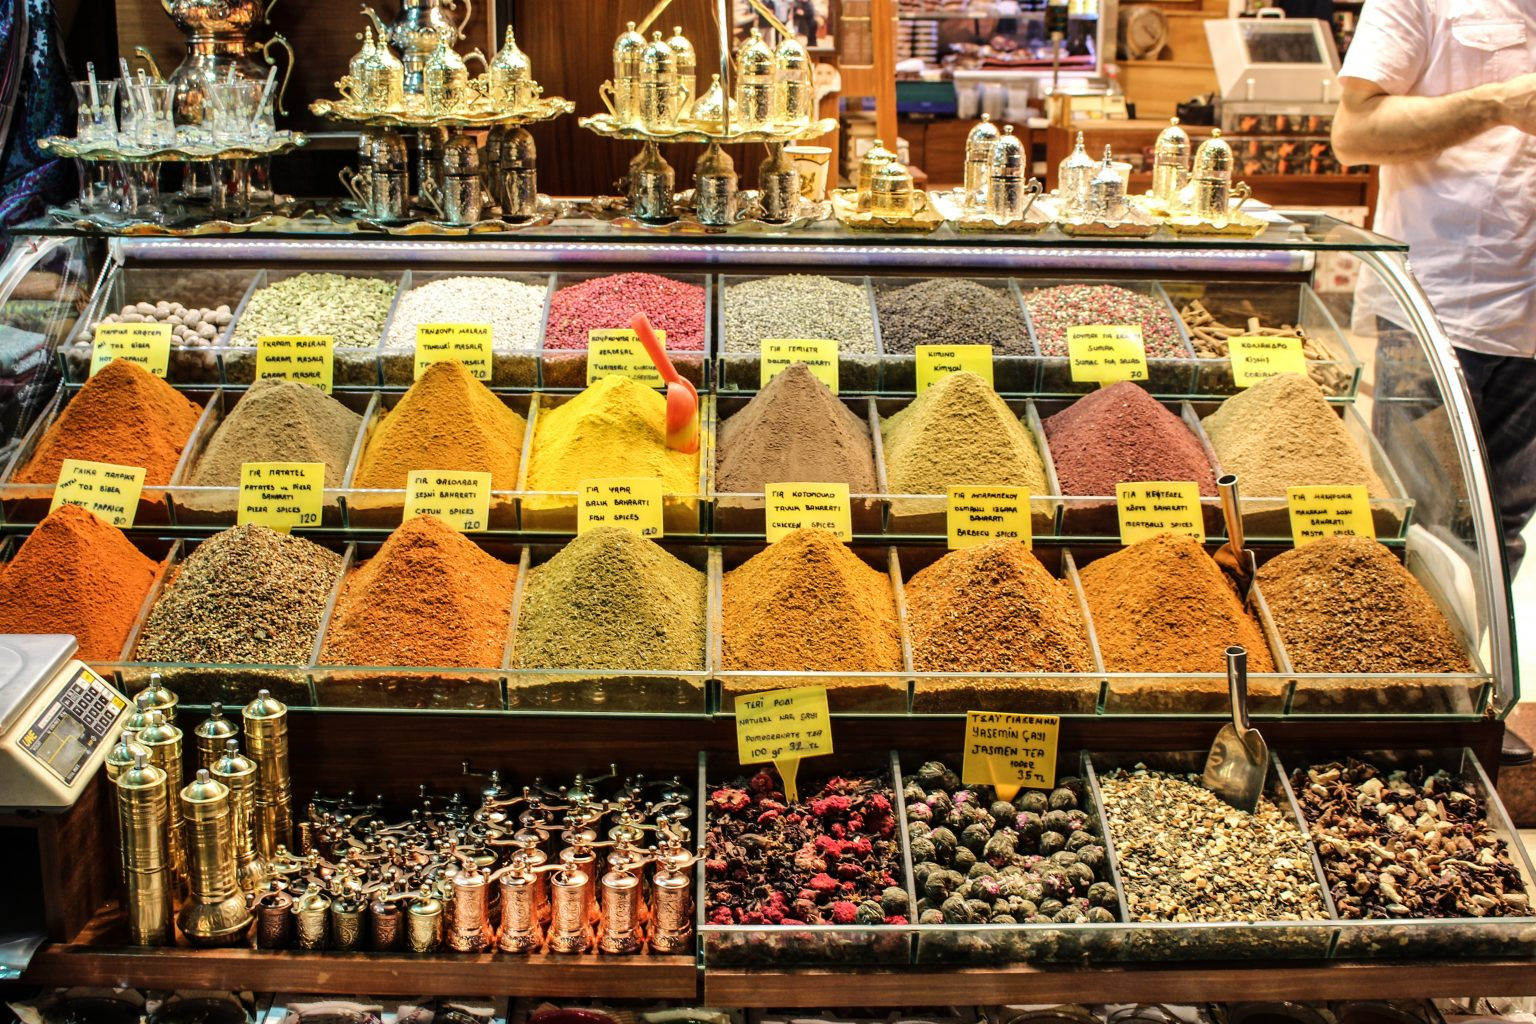 Spice Bazaar, things to do in istanbul, what to do in istanbul